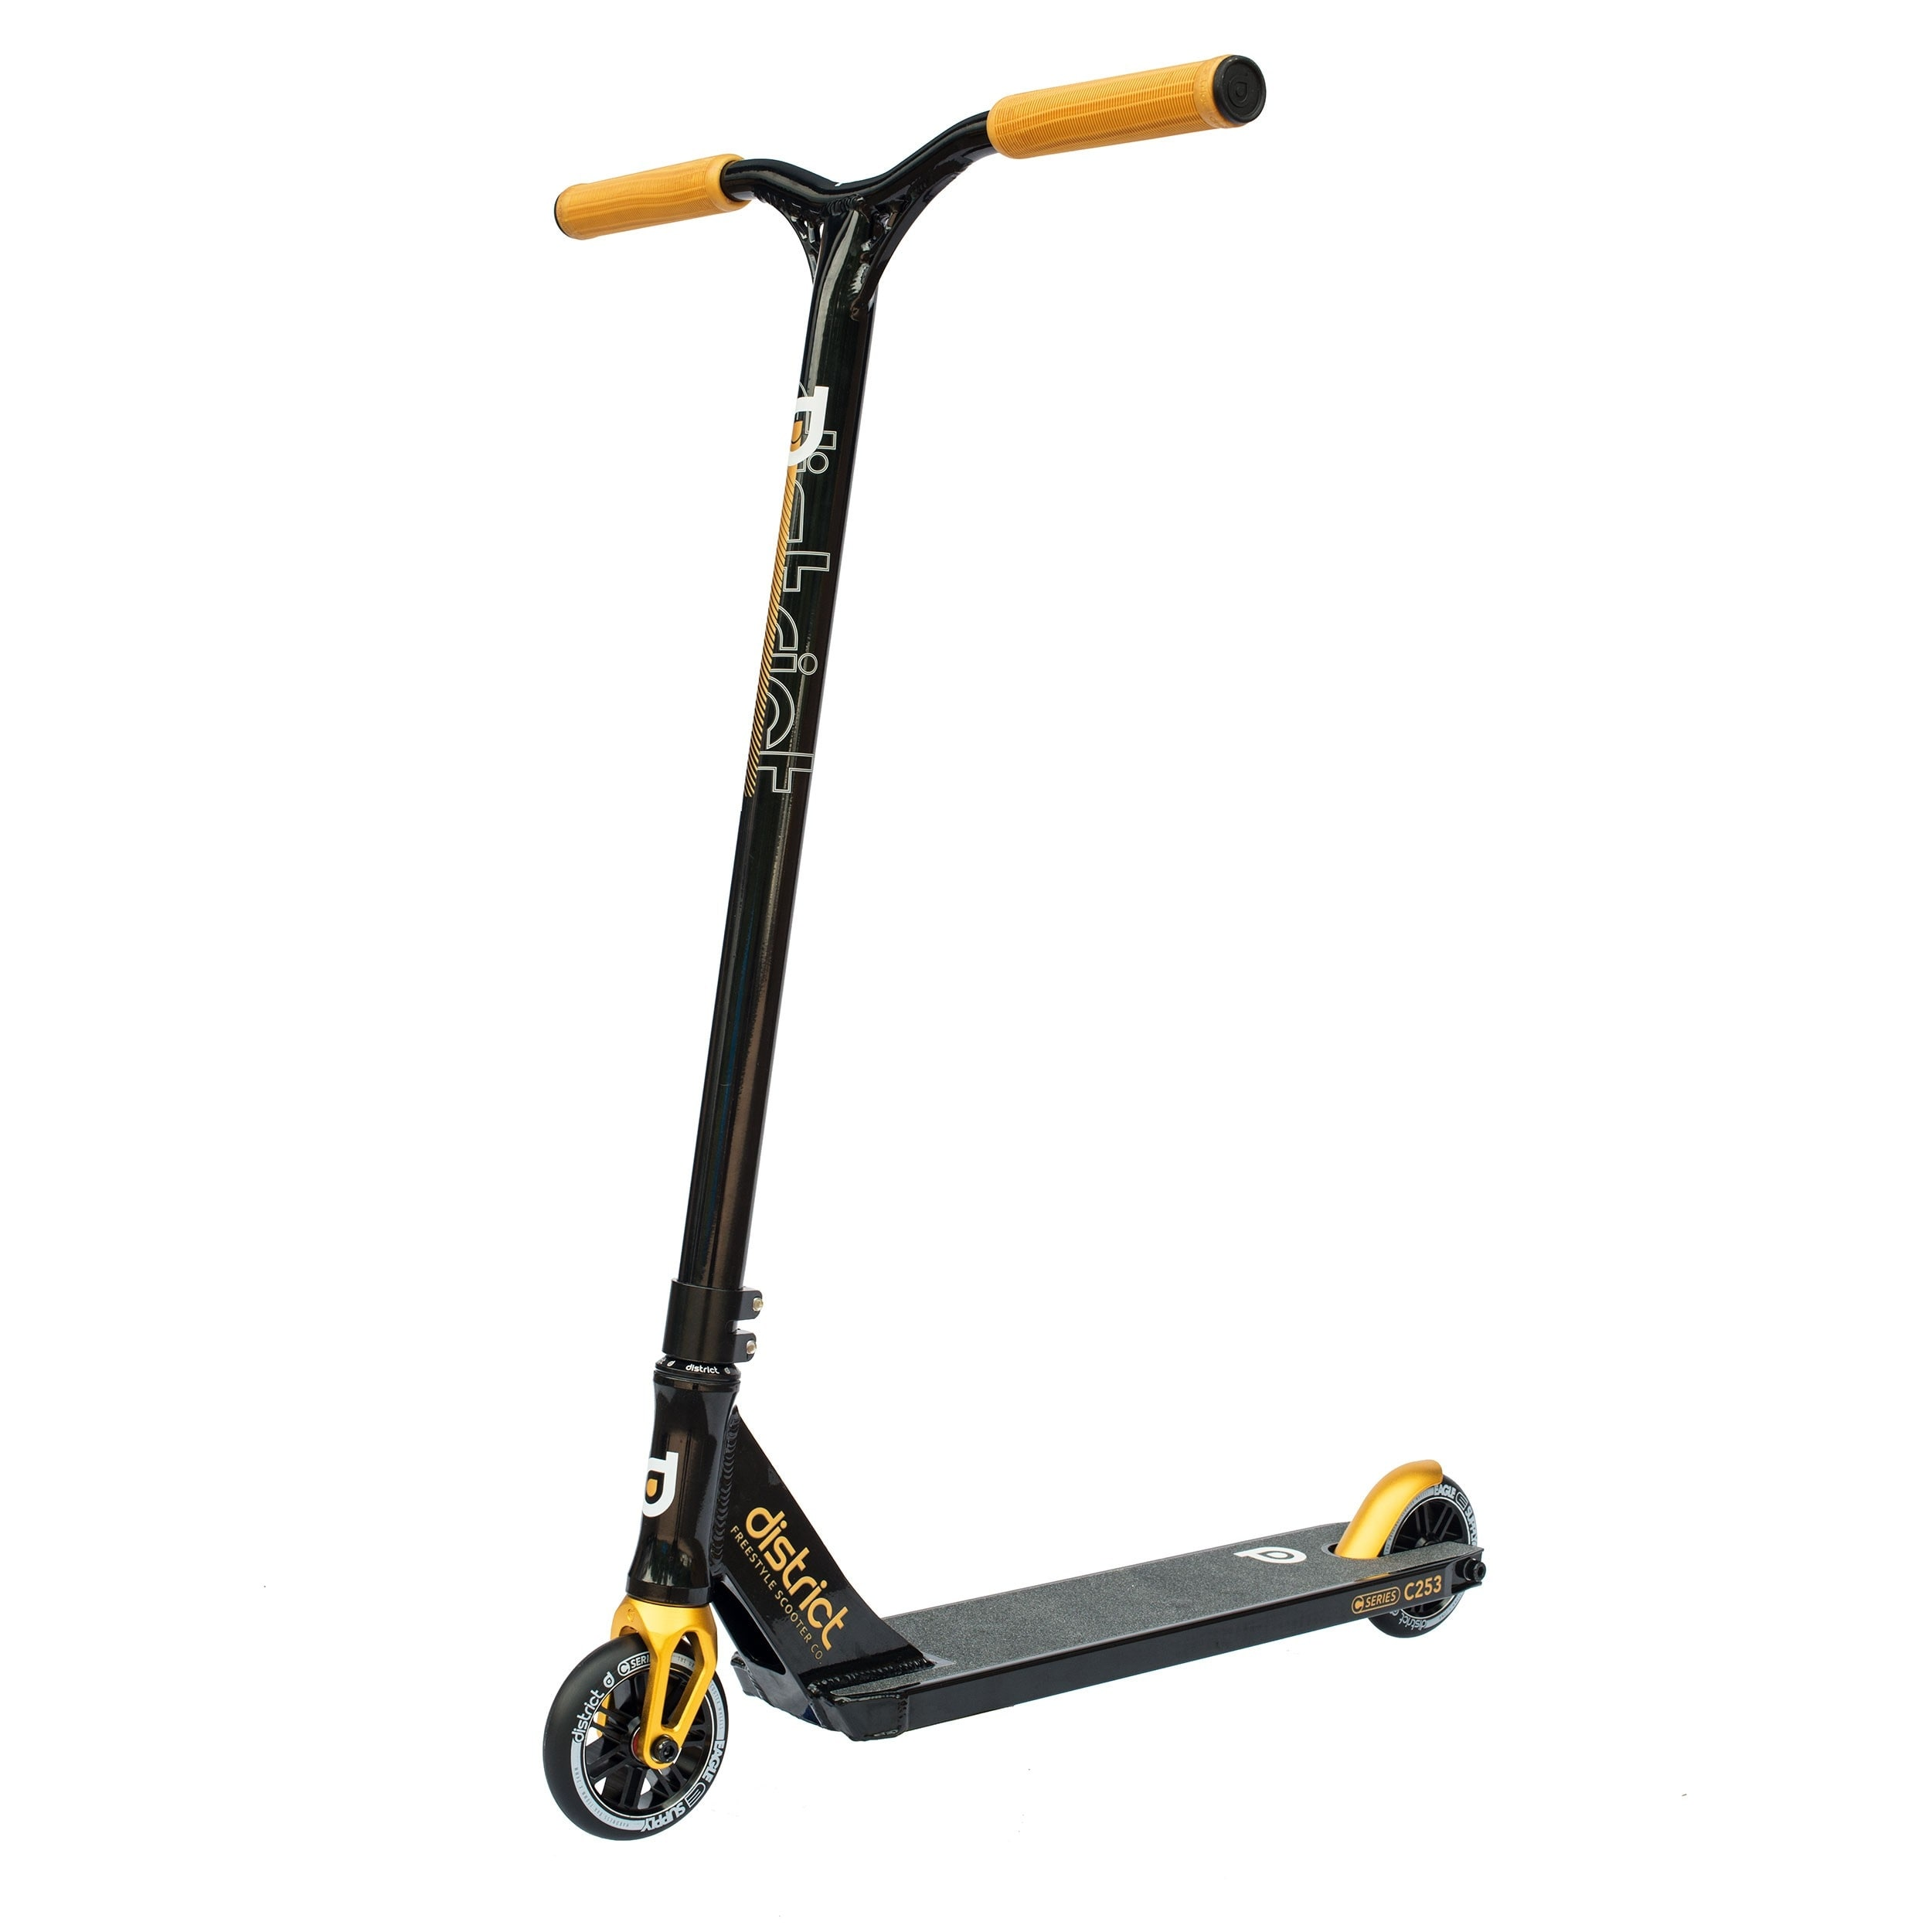 Image of District 2017 C-Series C253 Complete Scooter - Black/Gold